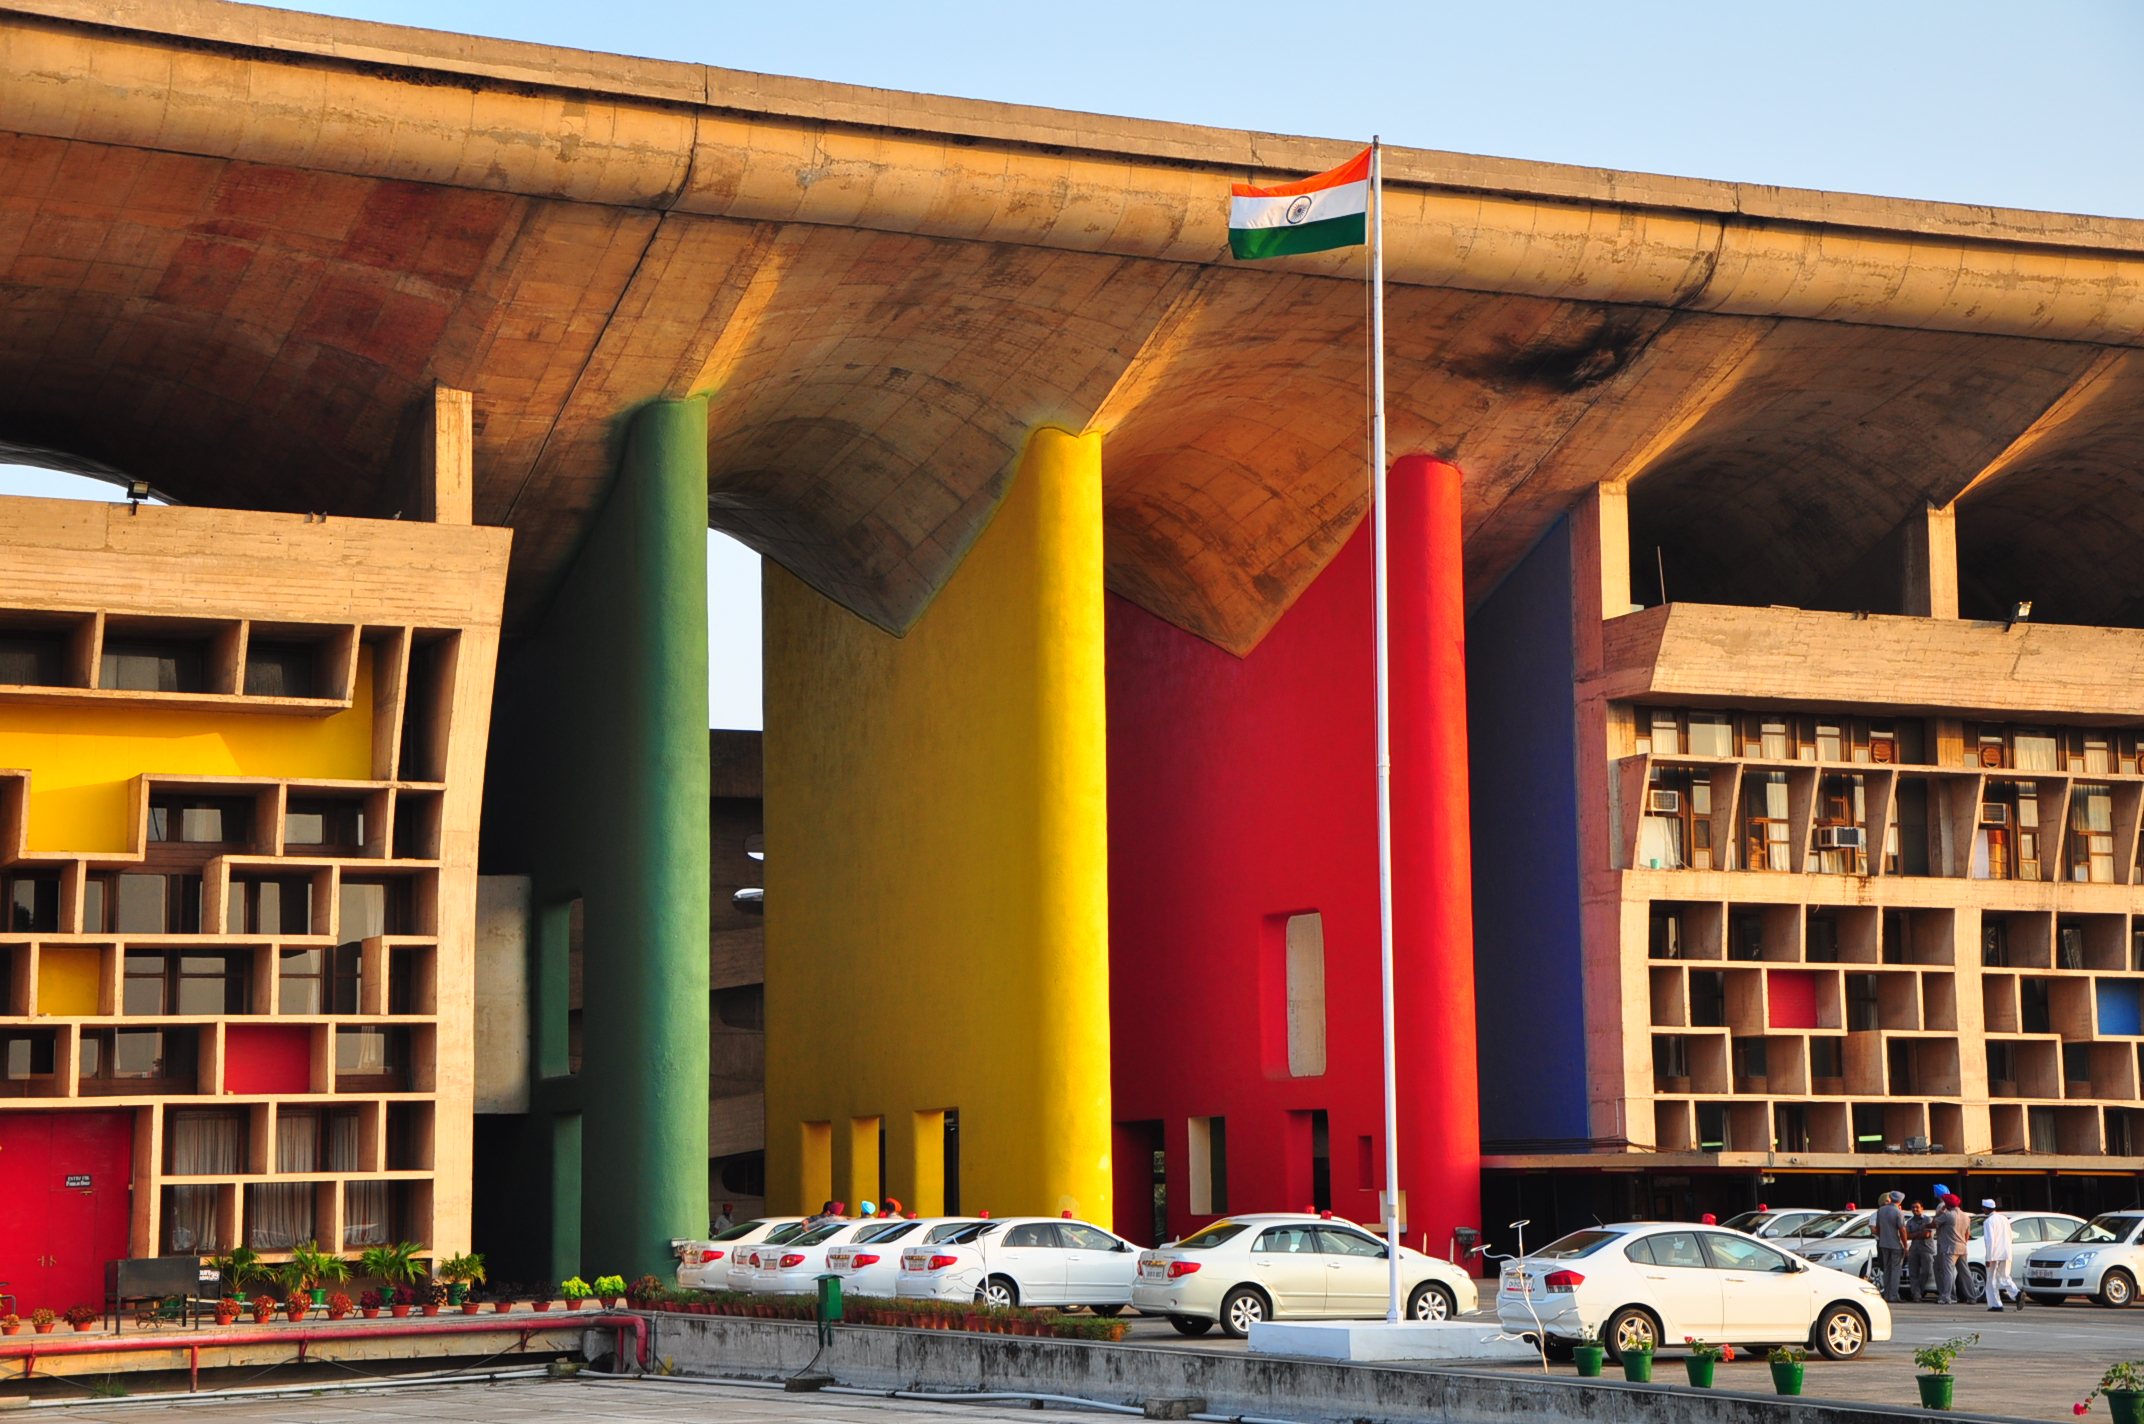 India Chandigarh Modernist City Planned With The Help Of Le